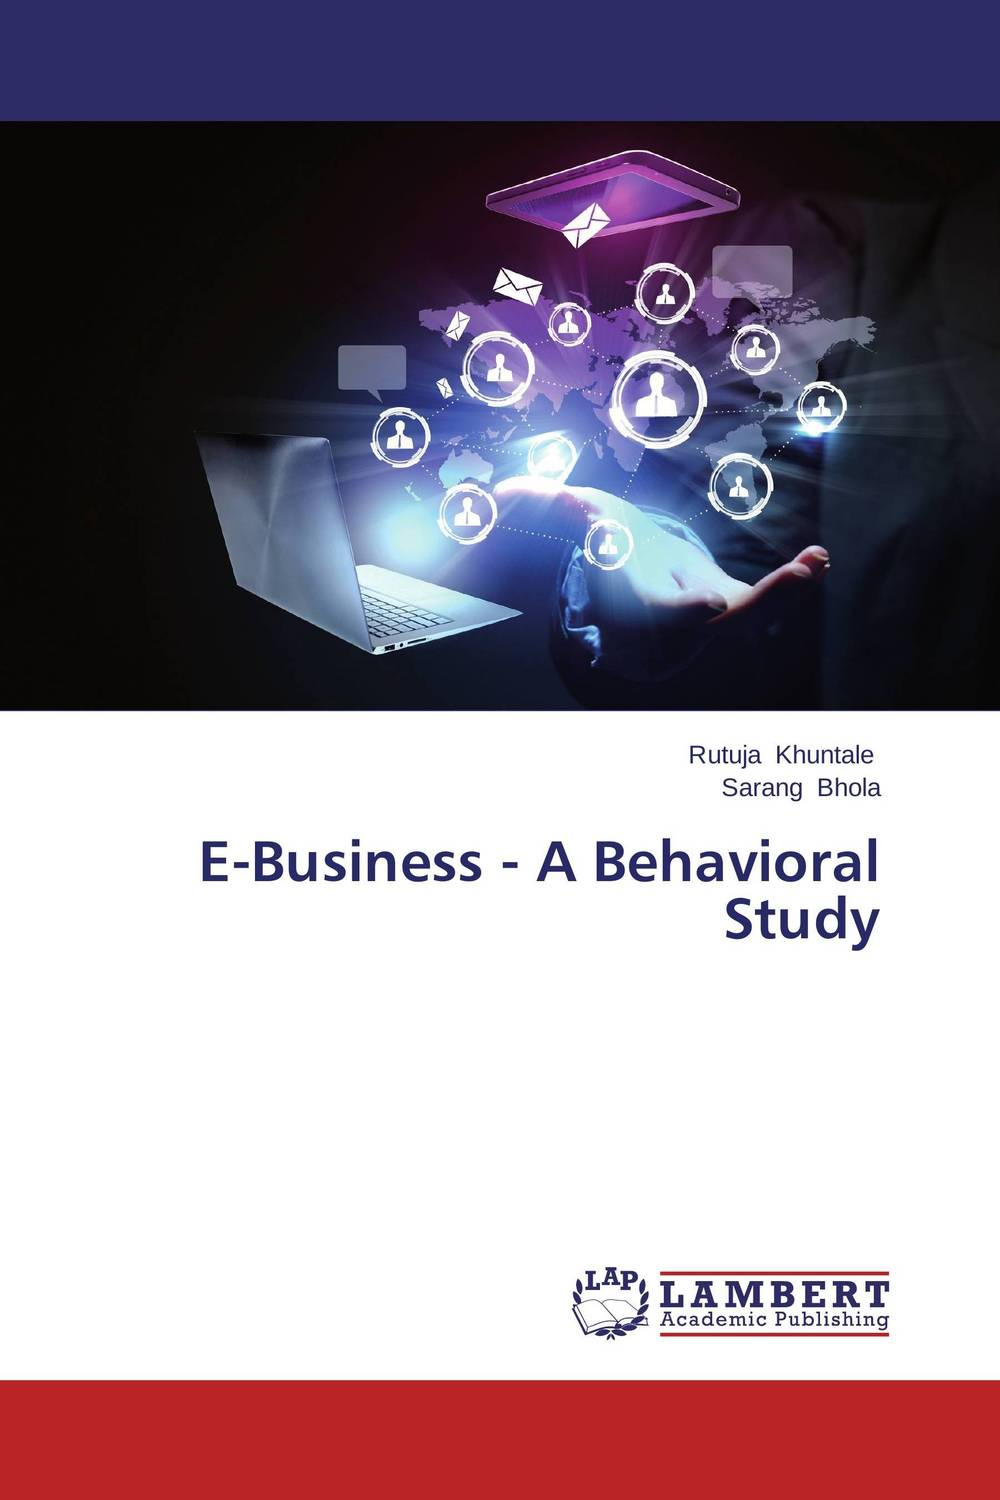 E-Business - A Behavioral Study